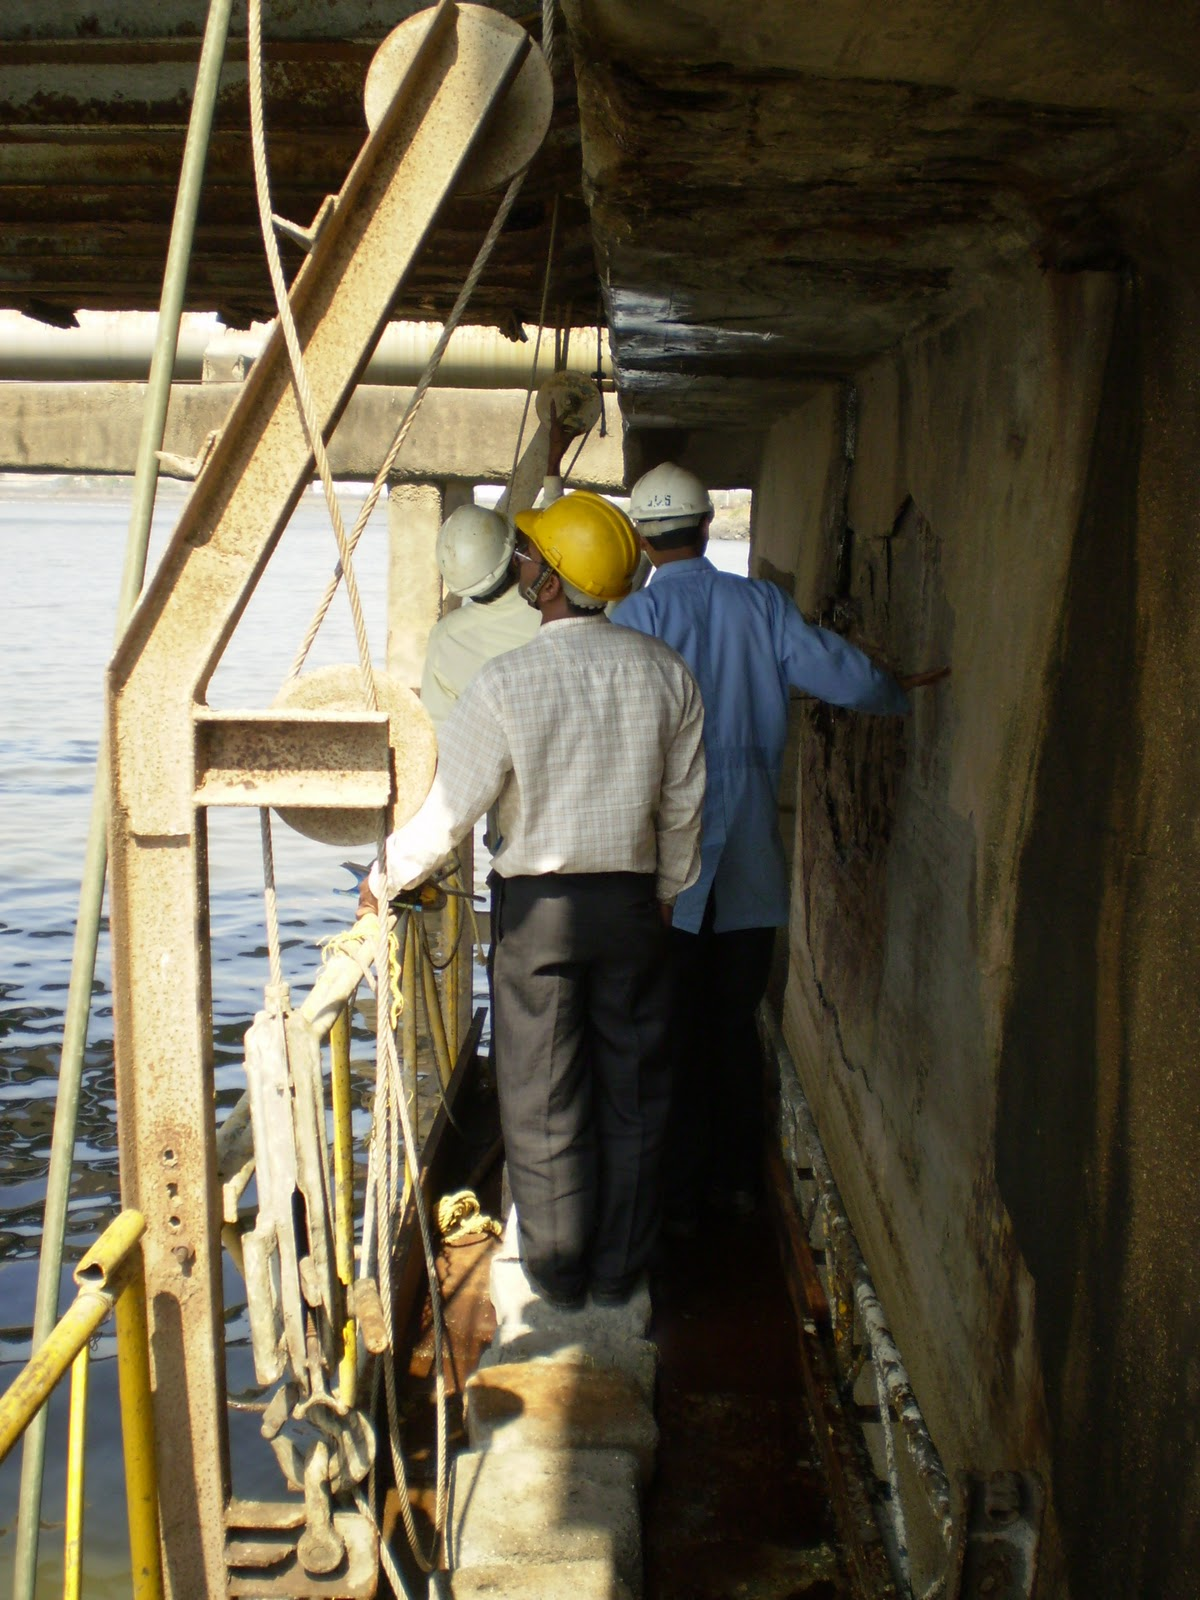 Major Repairs to Jetty Structures